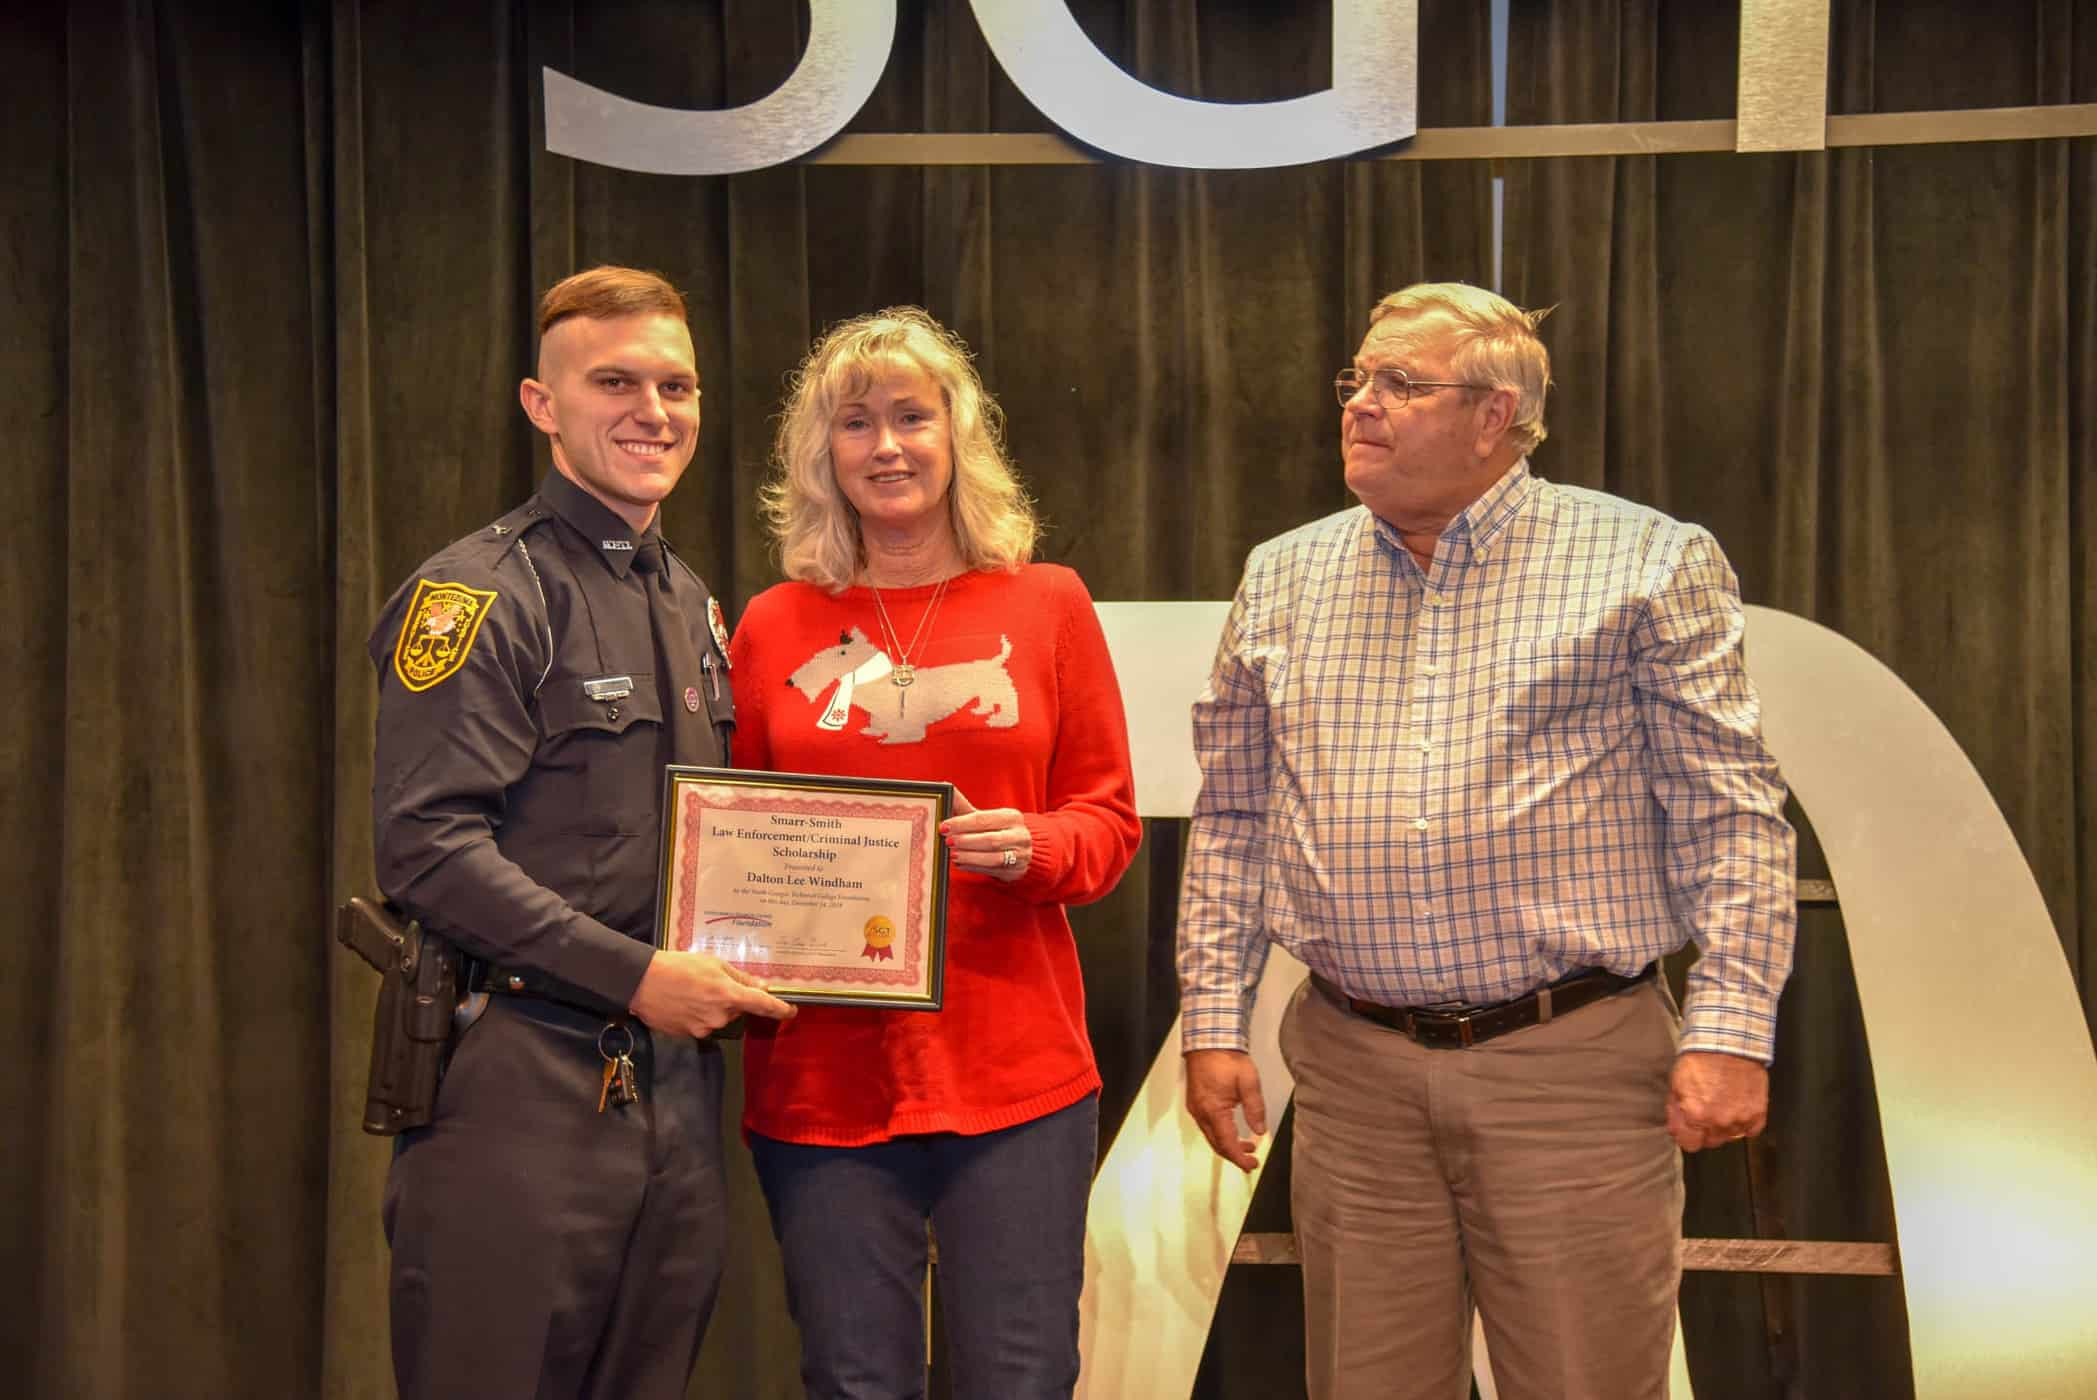 Paul and Sharon Smith Johnson are shown above (right to left) presenting Dalton Windham of the Montezuma Police Department with a Smarr-Smith Criminal Justice Scholarship.